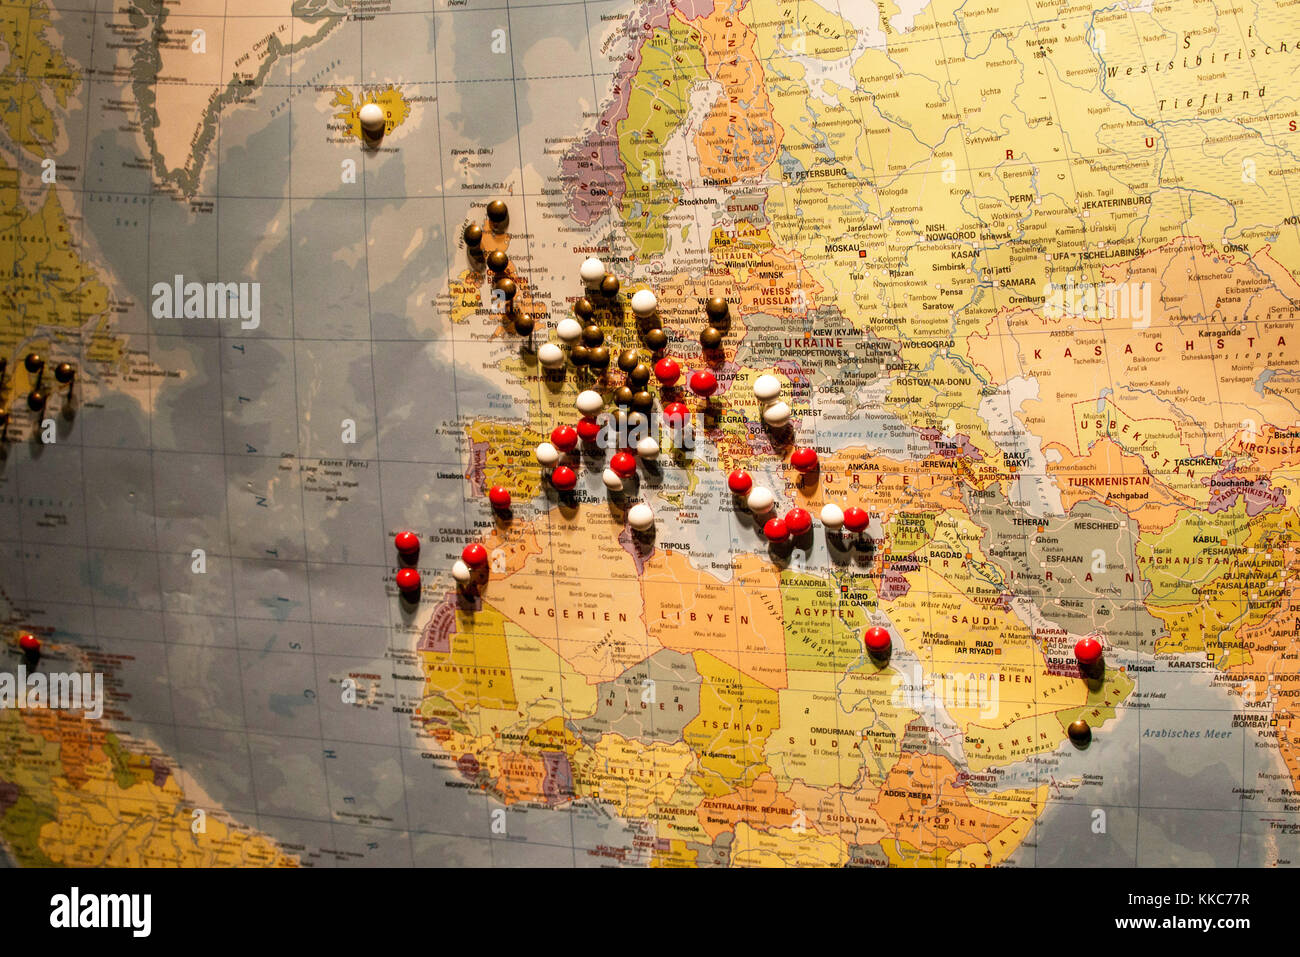 Red map pin in road stock photos red map pin in road stock images picture of world map travel concept with many pushpins pins in europe and surrounding stock gumiabroncs Choice Image